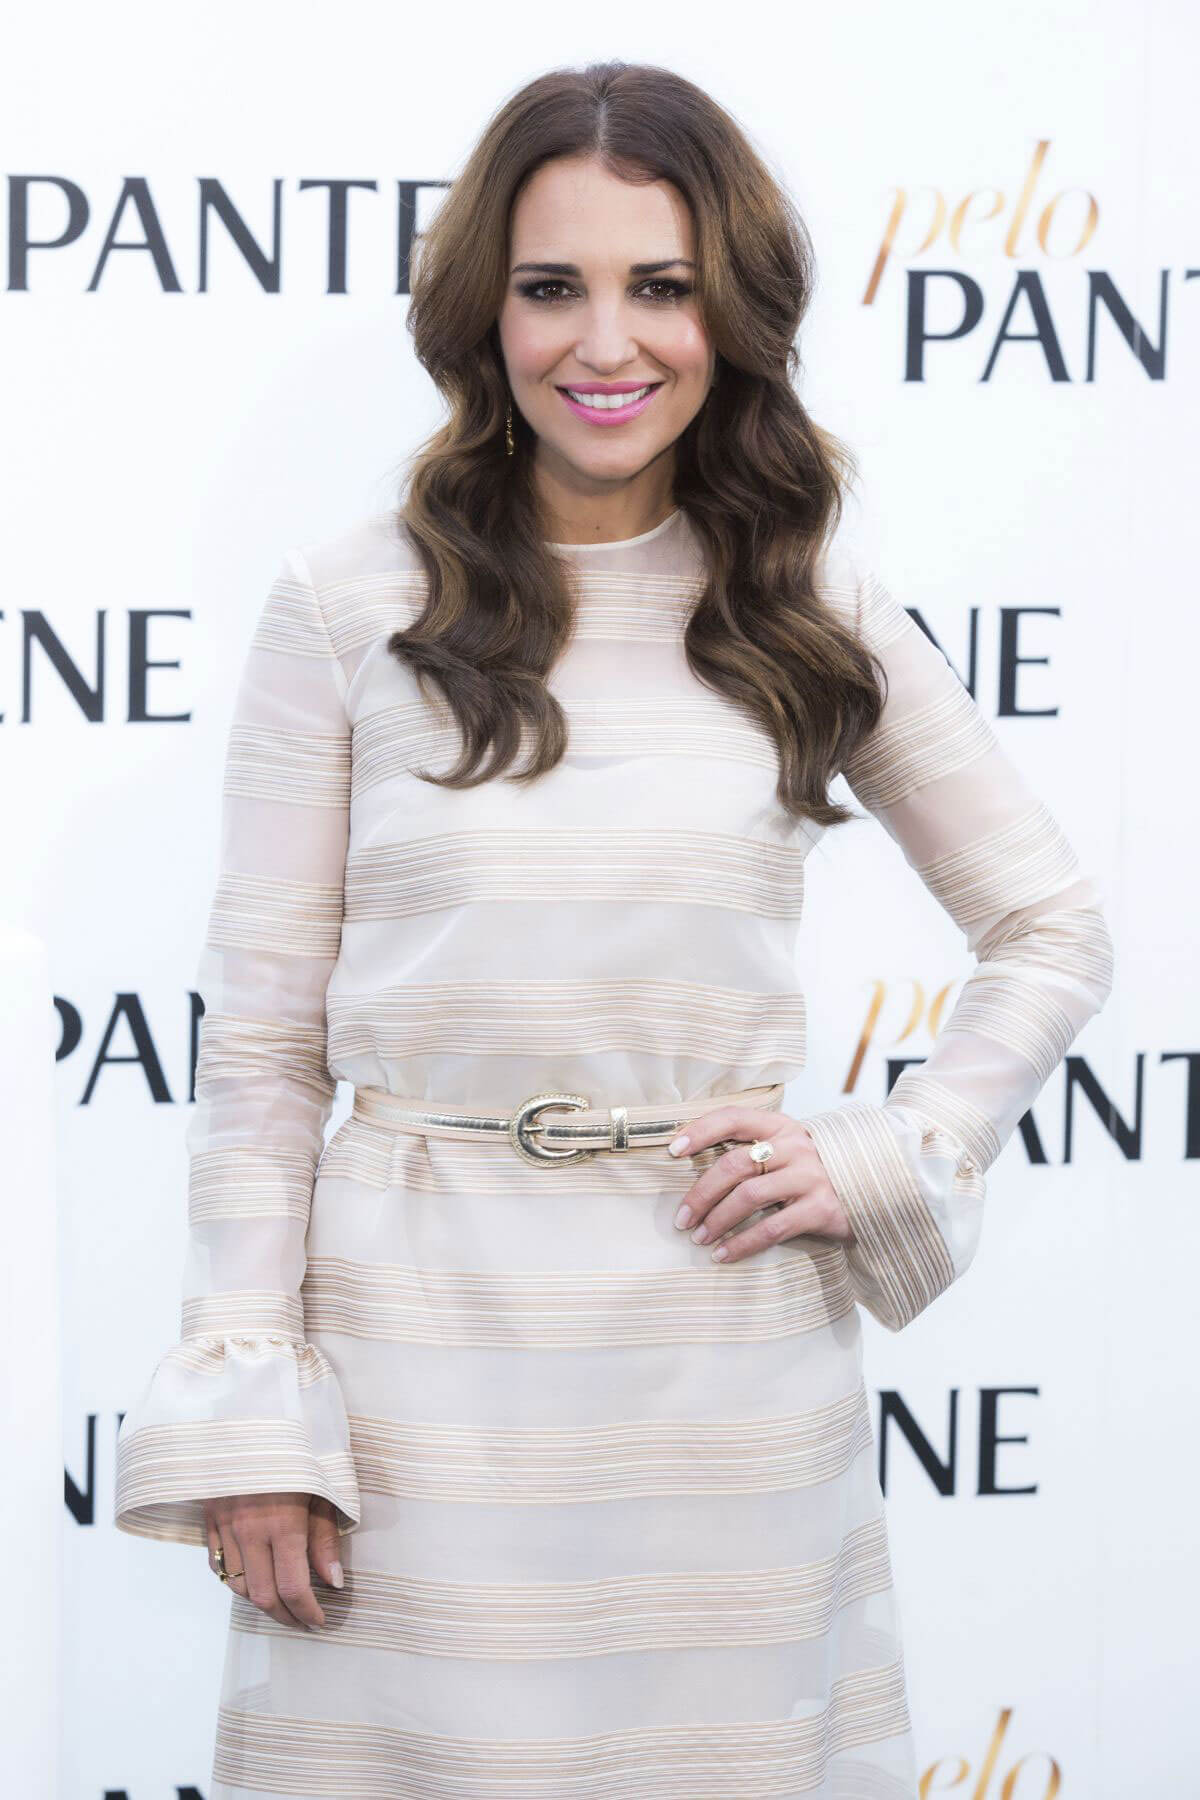 Paula Echevarría Stills at Pantene Photocall in Madrid